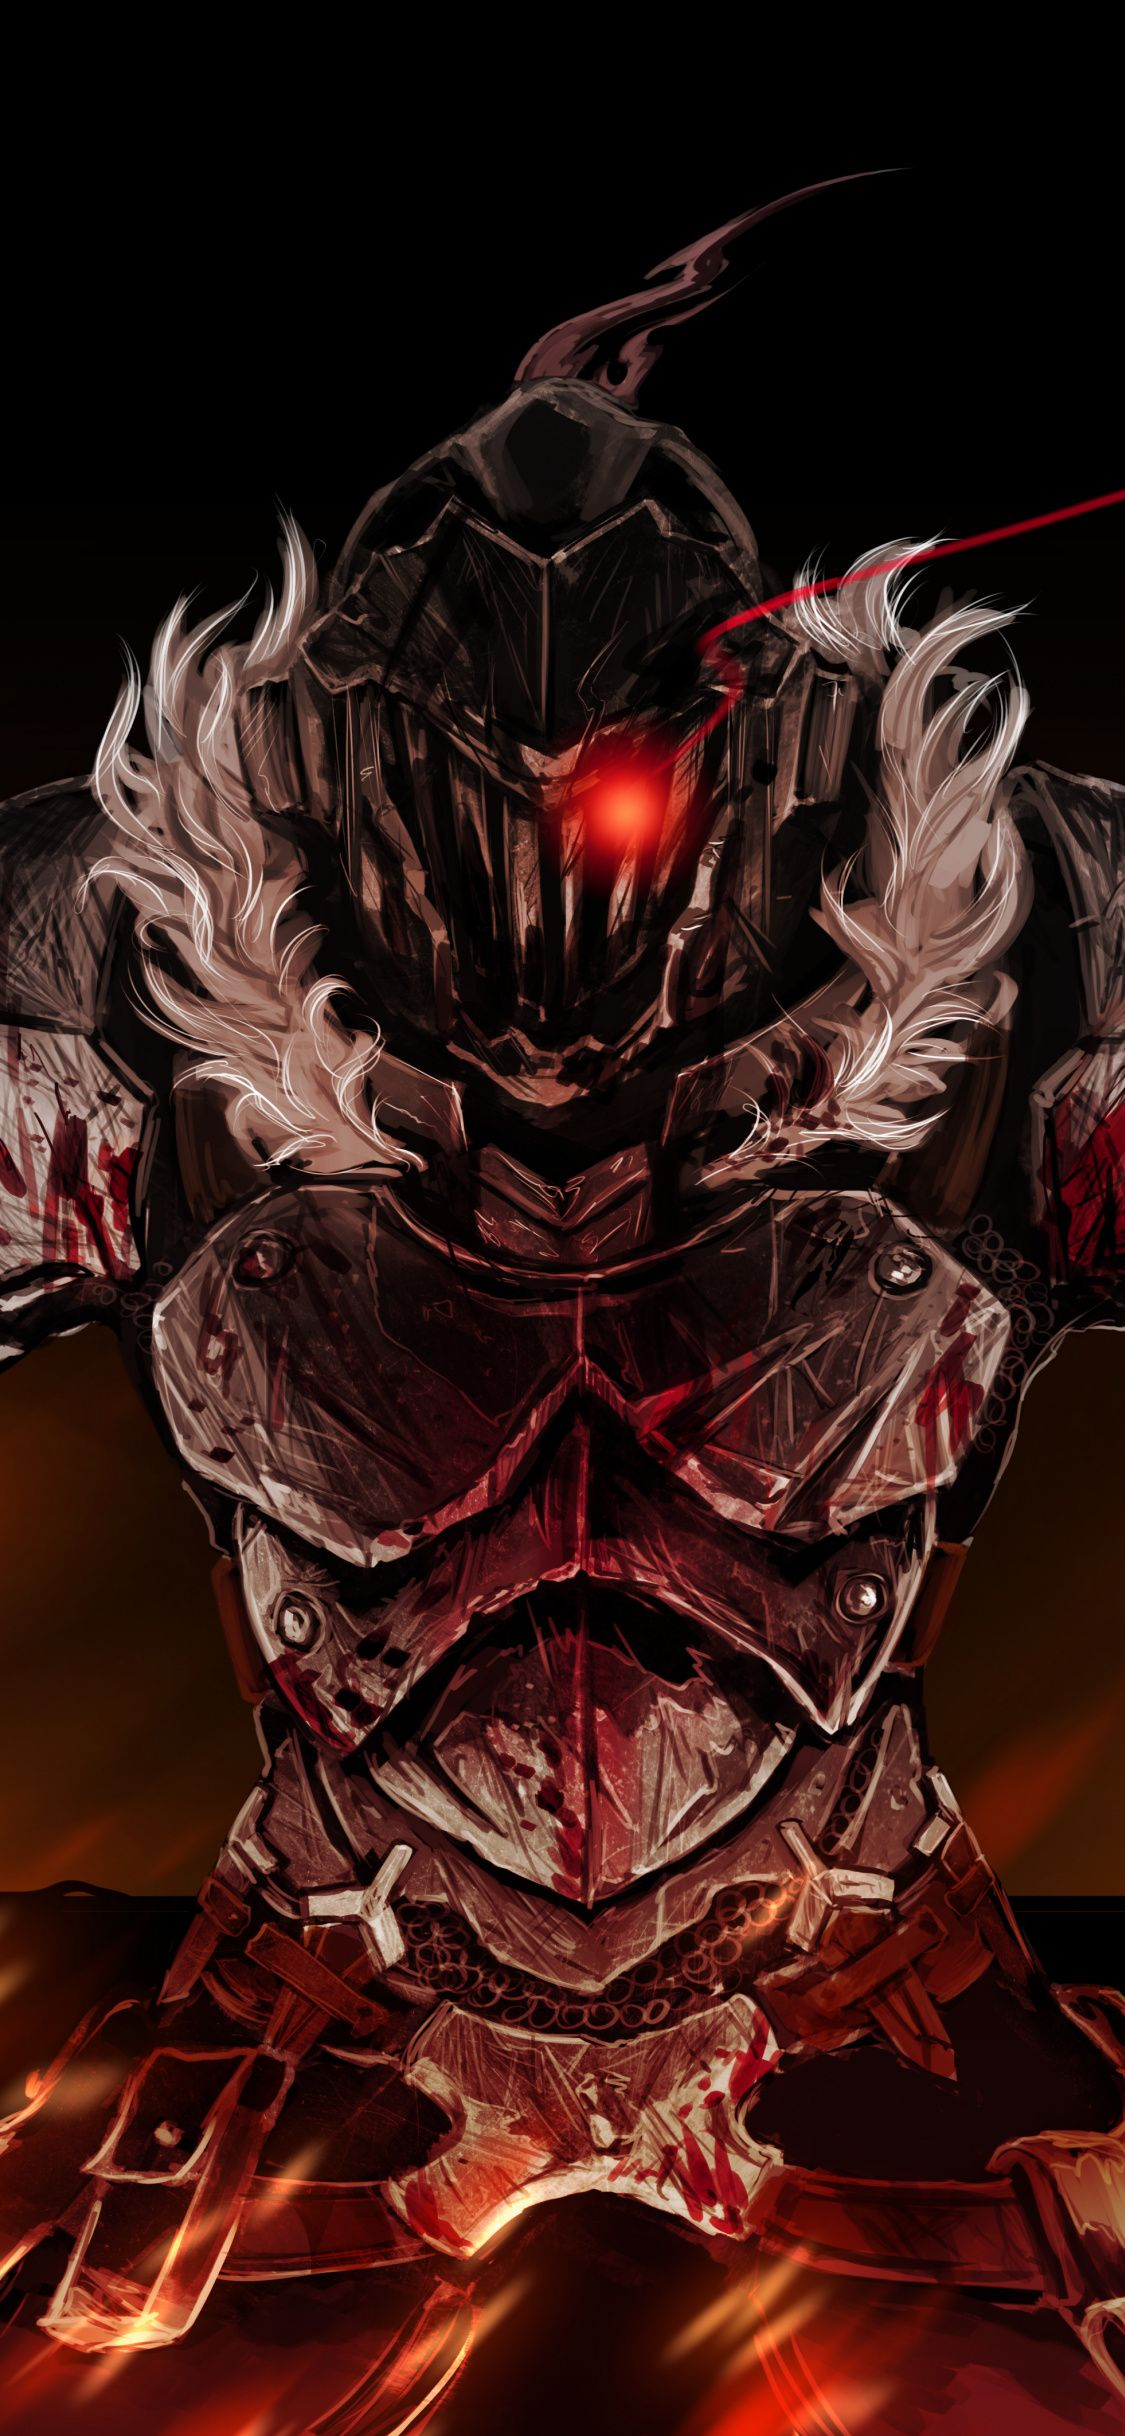 Anime Armour Suit Dark Goblin Slayer 1125x2436 Wallpaper